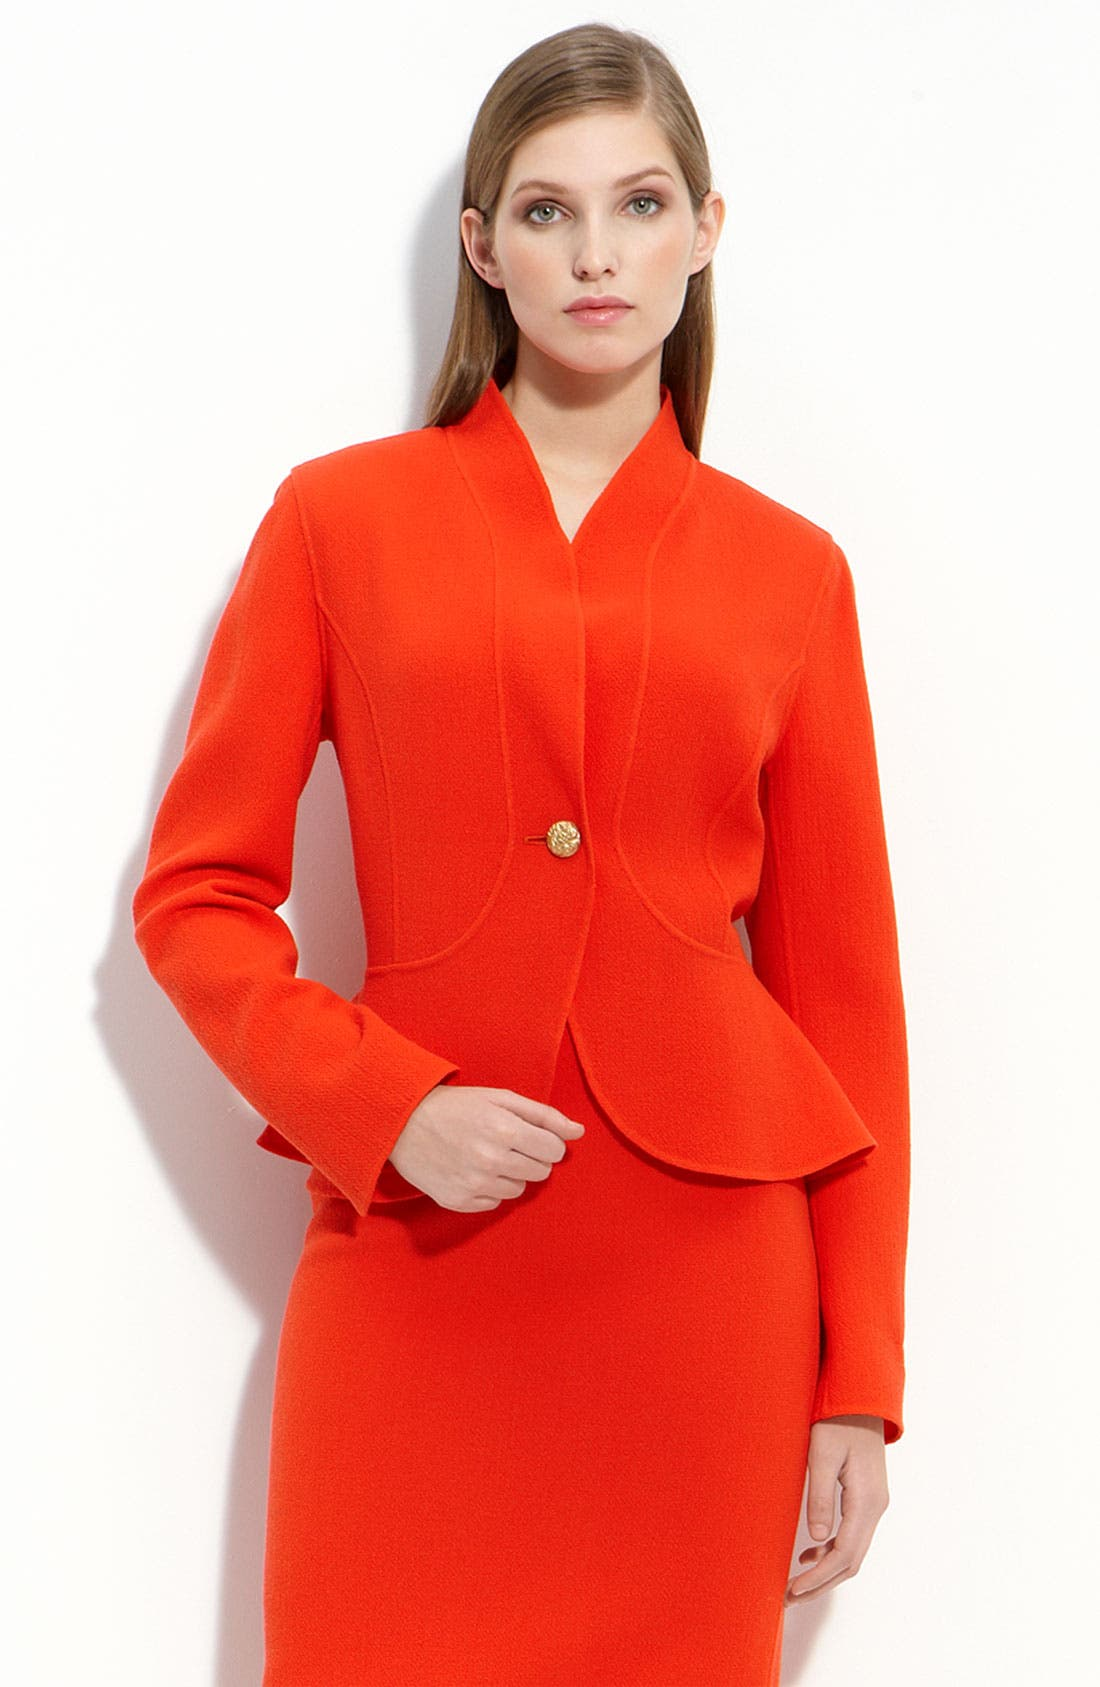 ST. JOHN COLLECTION, Double Face Crepe Jacket, Main thumbnail 1, color, 800